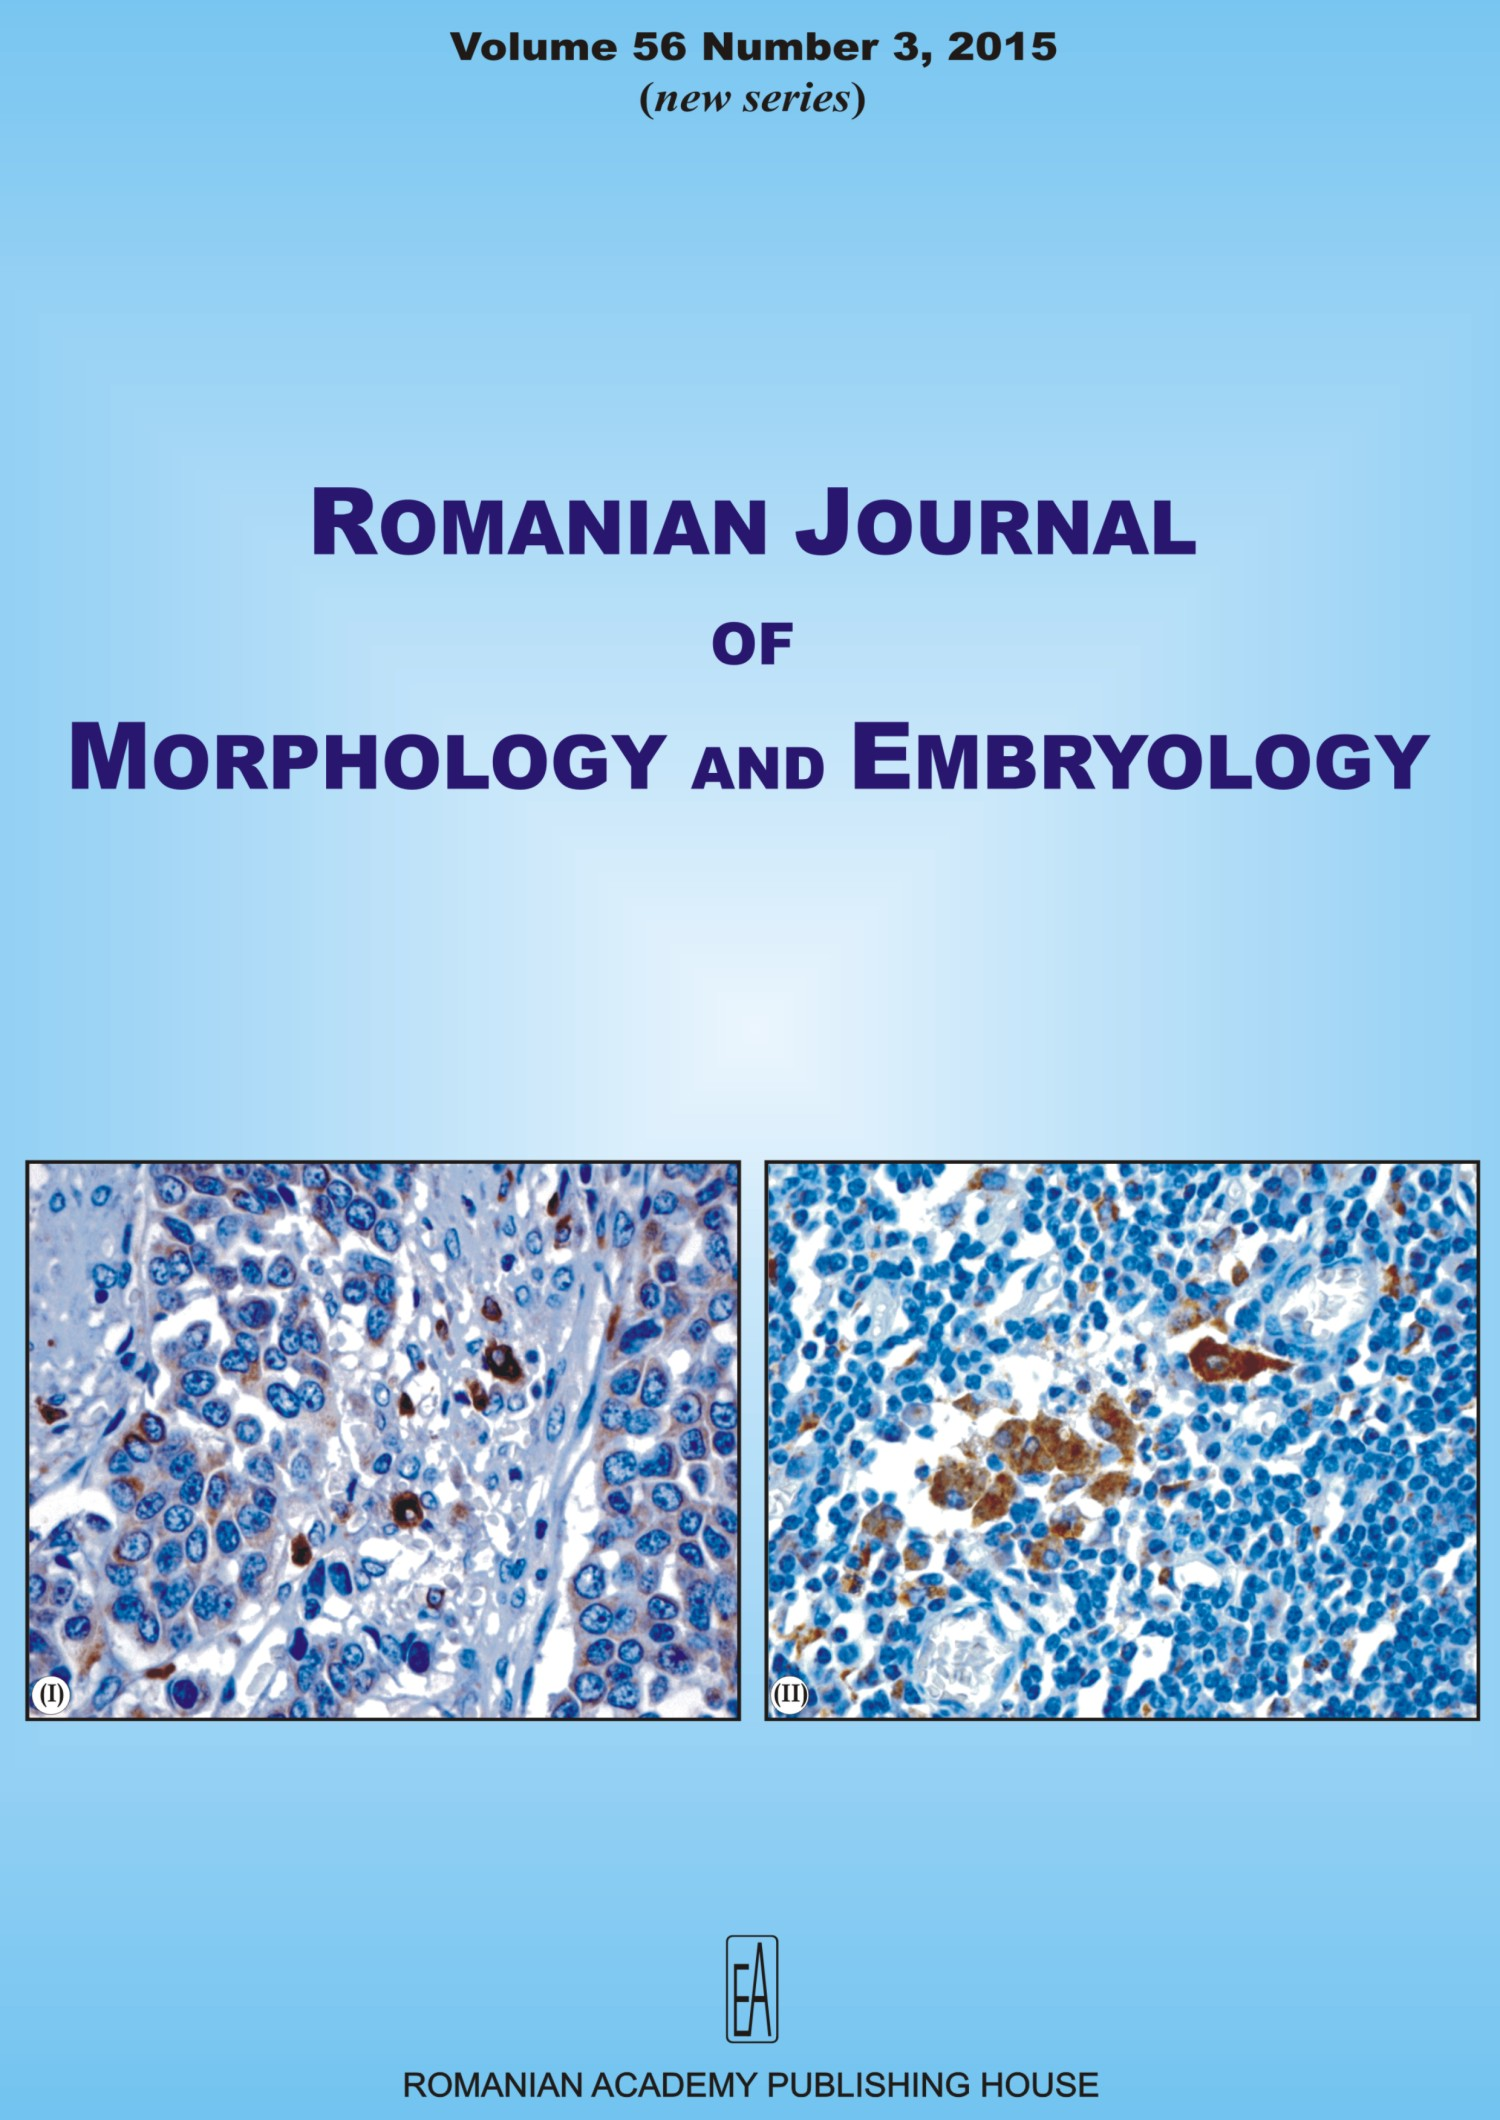 Romanian Journal of Morphology and Embryology, vol. 56 no. 3, 2015